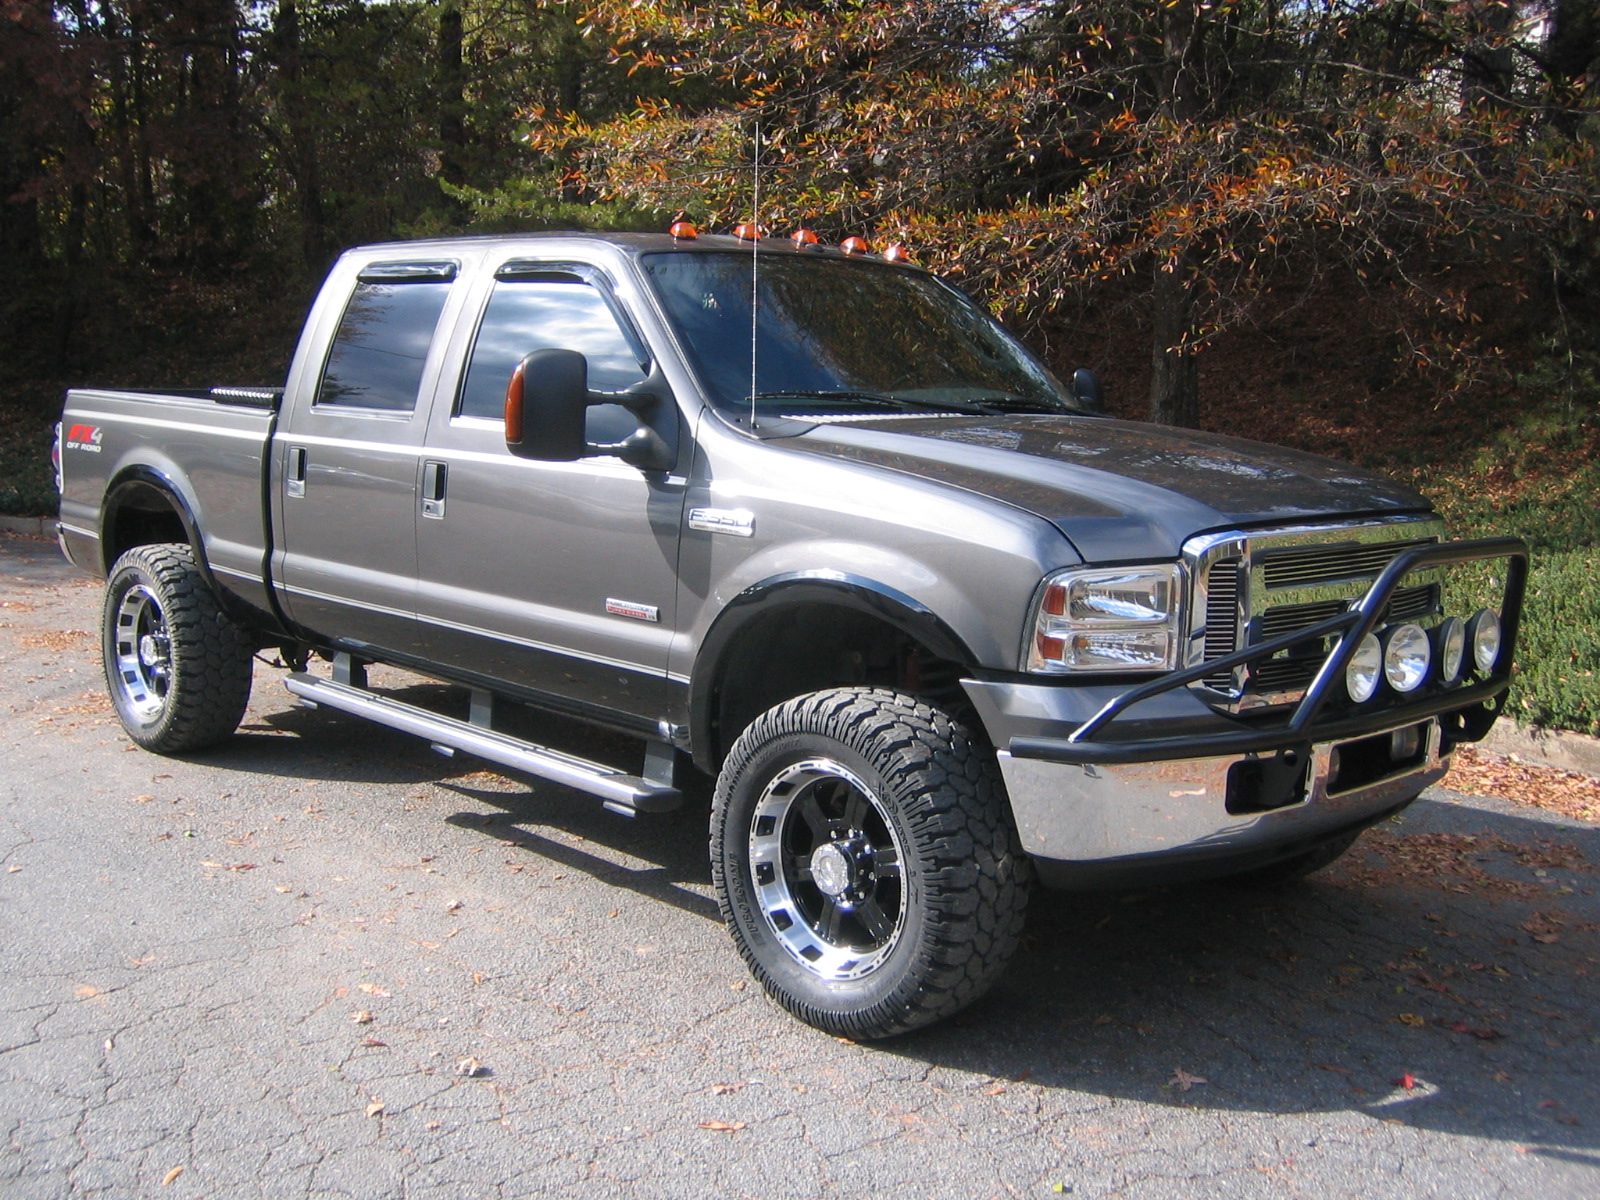 Ford F-350 Super Duty 2002 #3